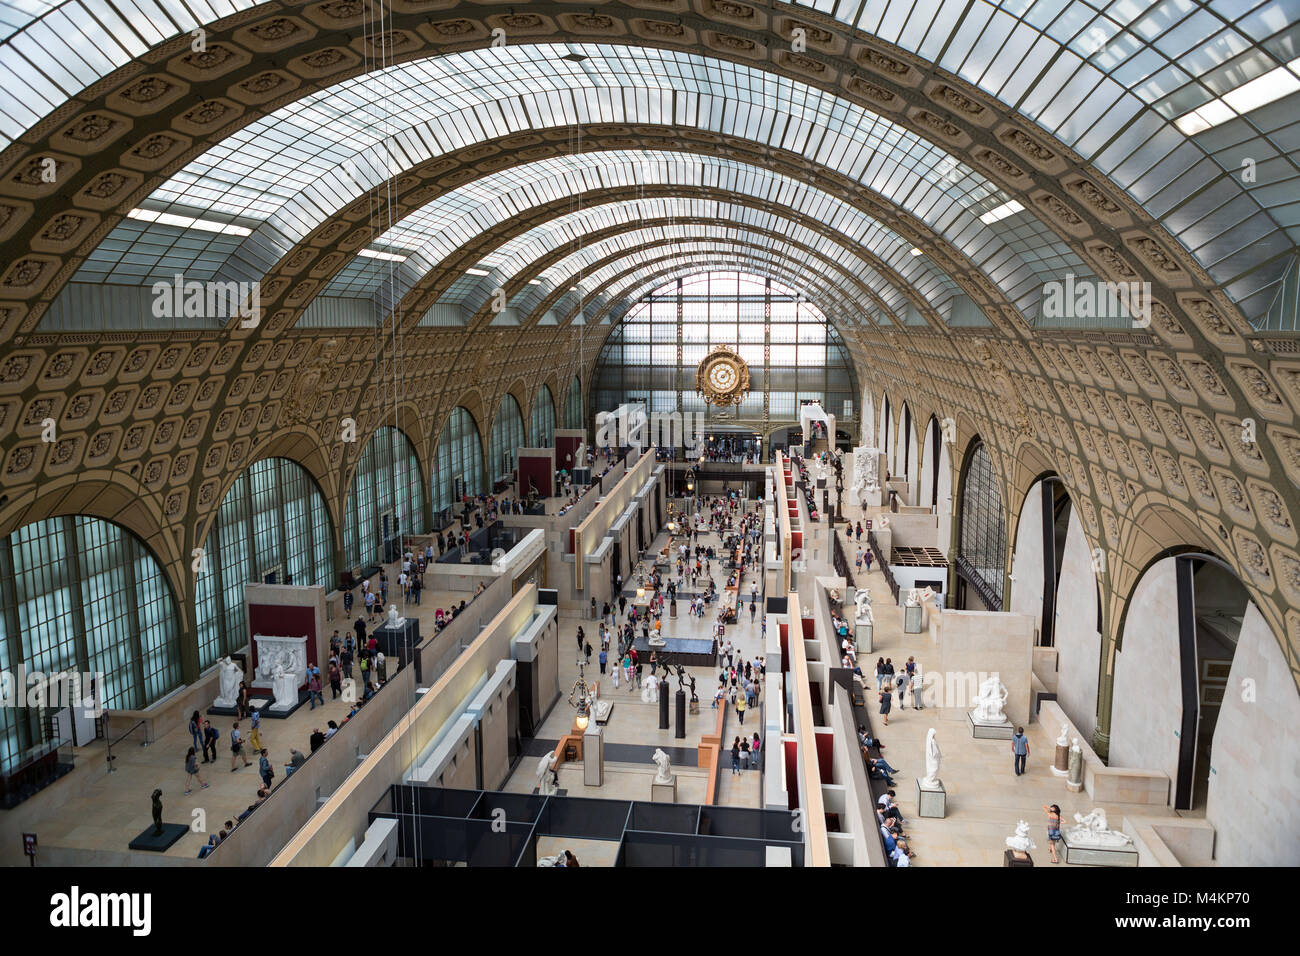 PARIS -SEPTEMBER 7, 2014: the museum D'Orsay in Paris, France. Musee d'Orsay has the largest collection - Stock Image